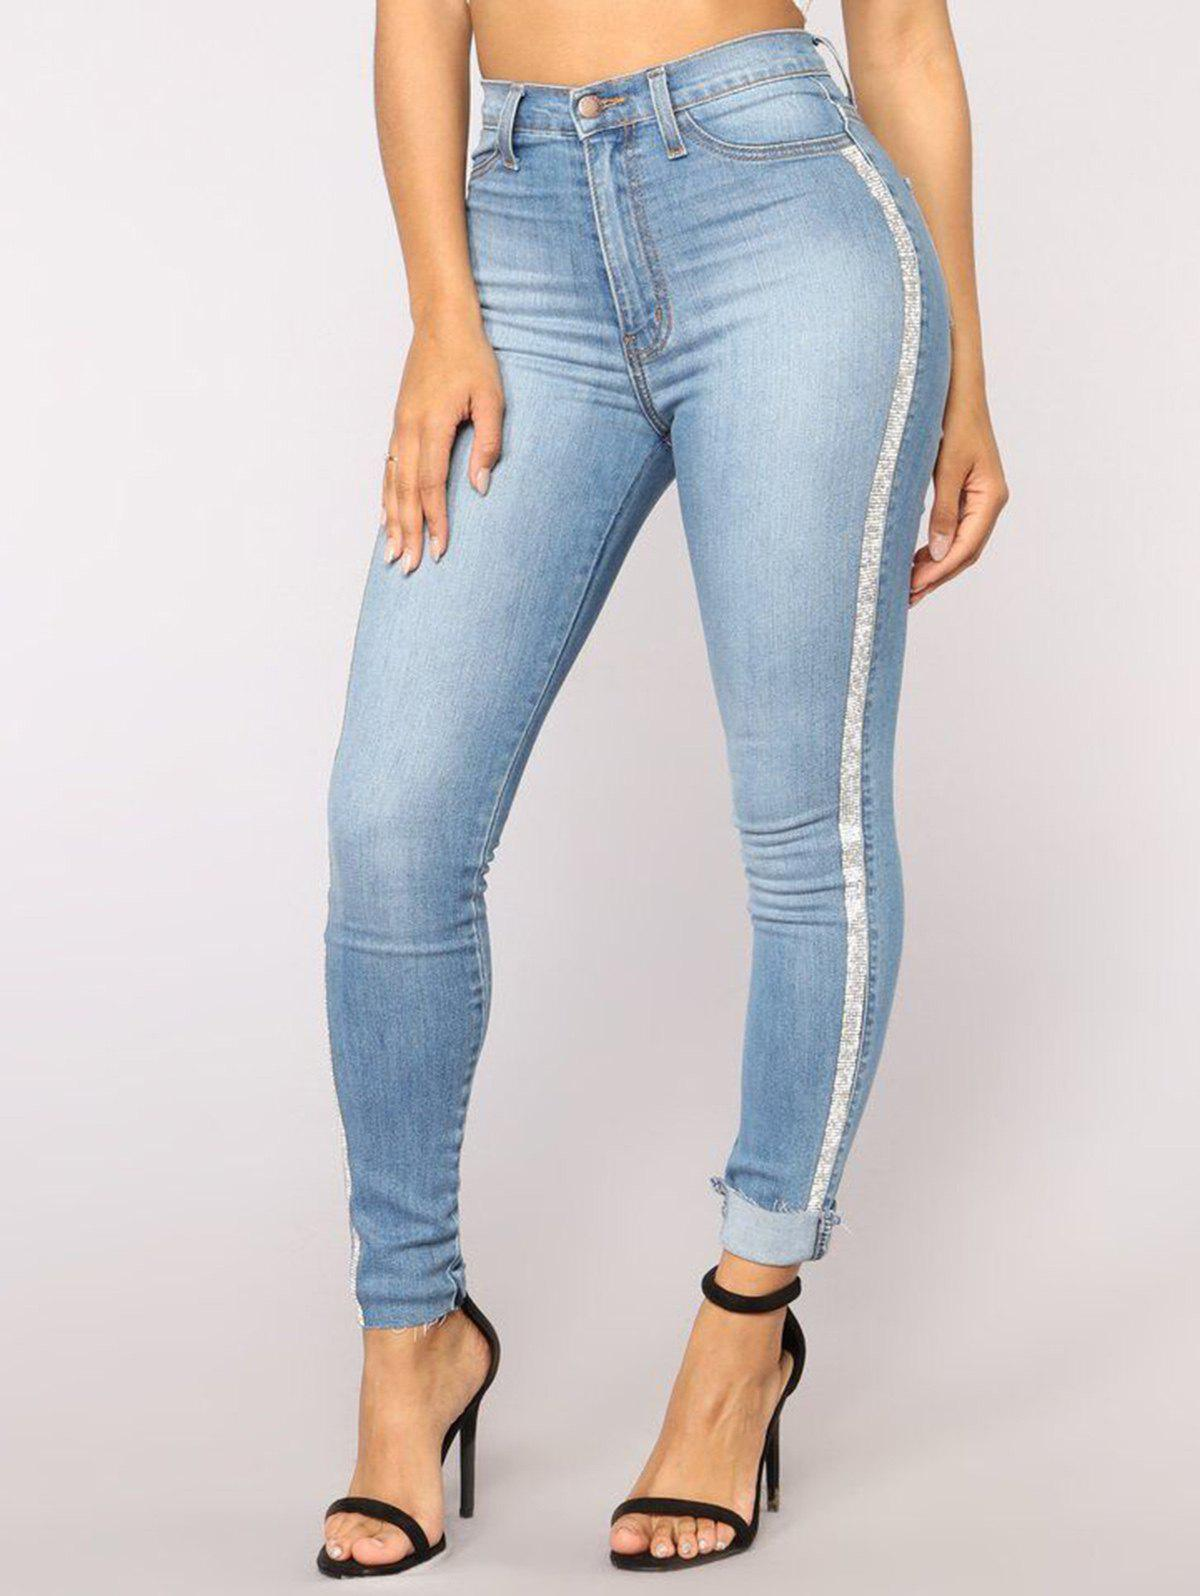 Womens Casual Trendy Pencil Stretch Skinny Jeans - BLUE L